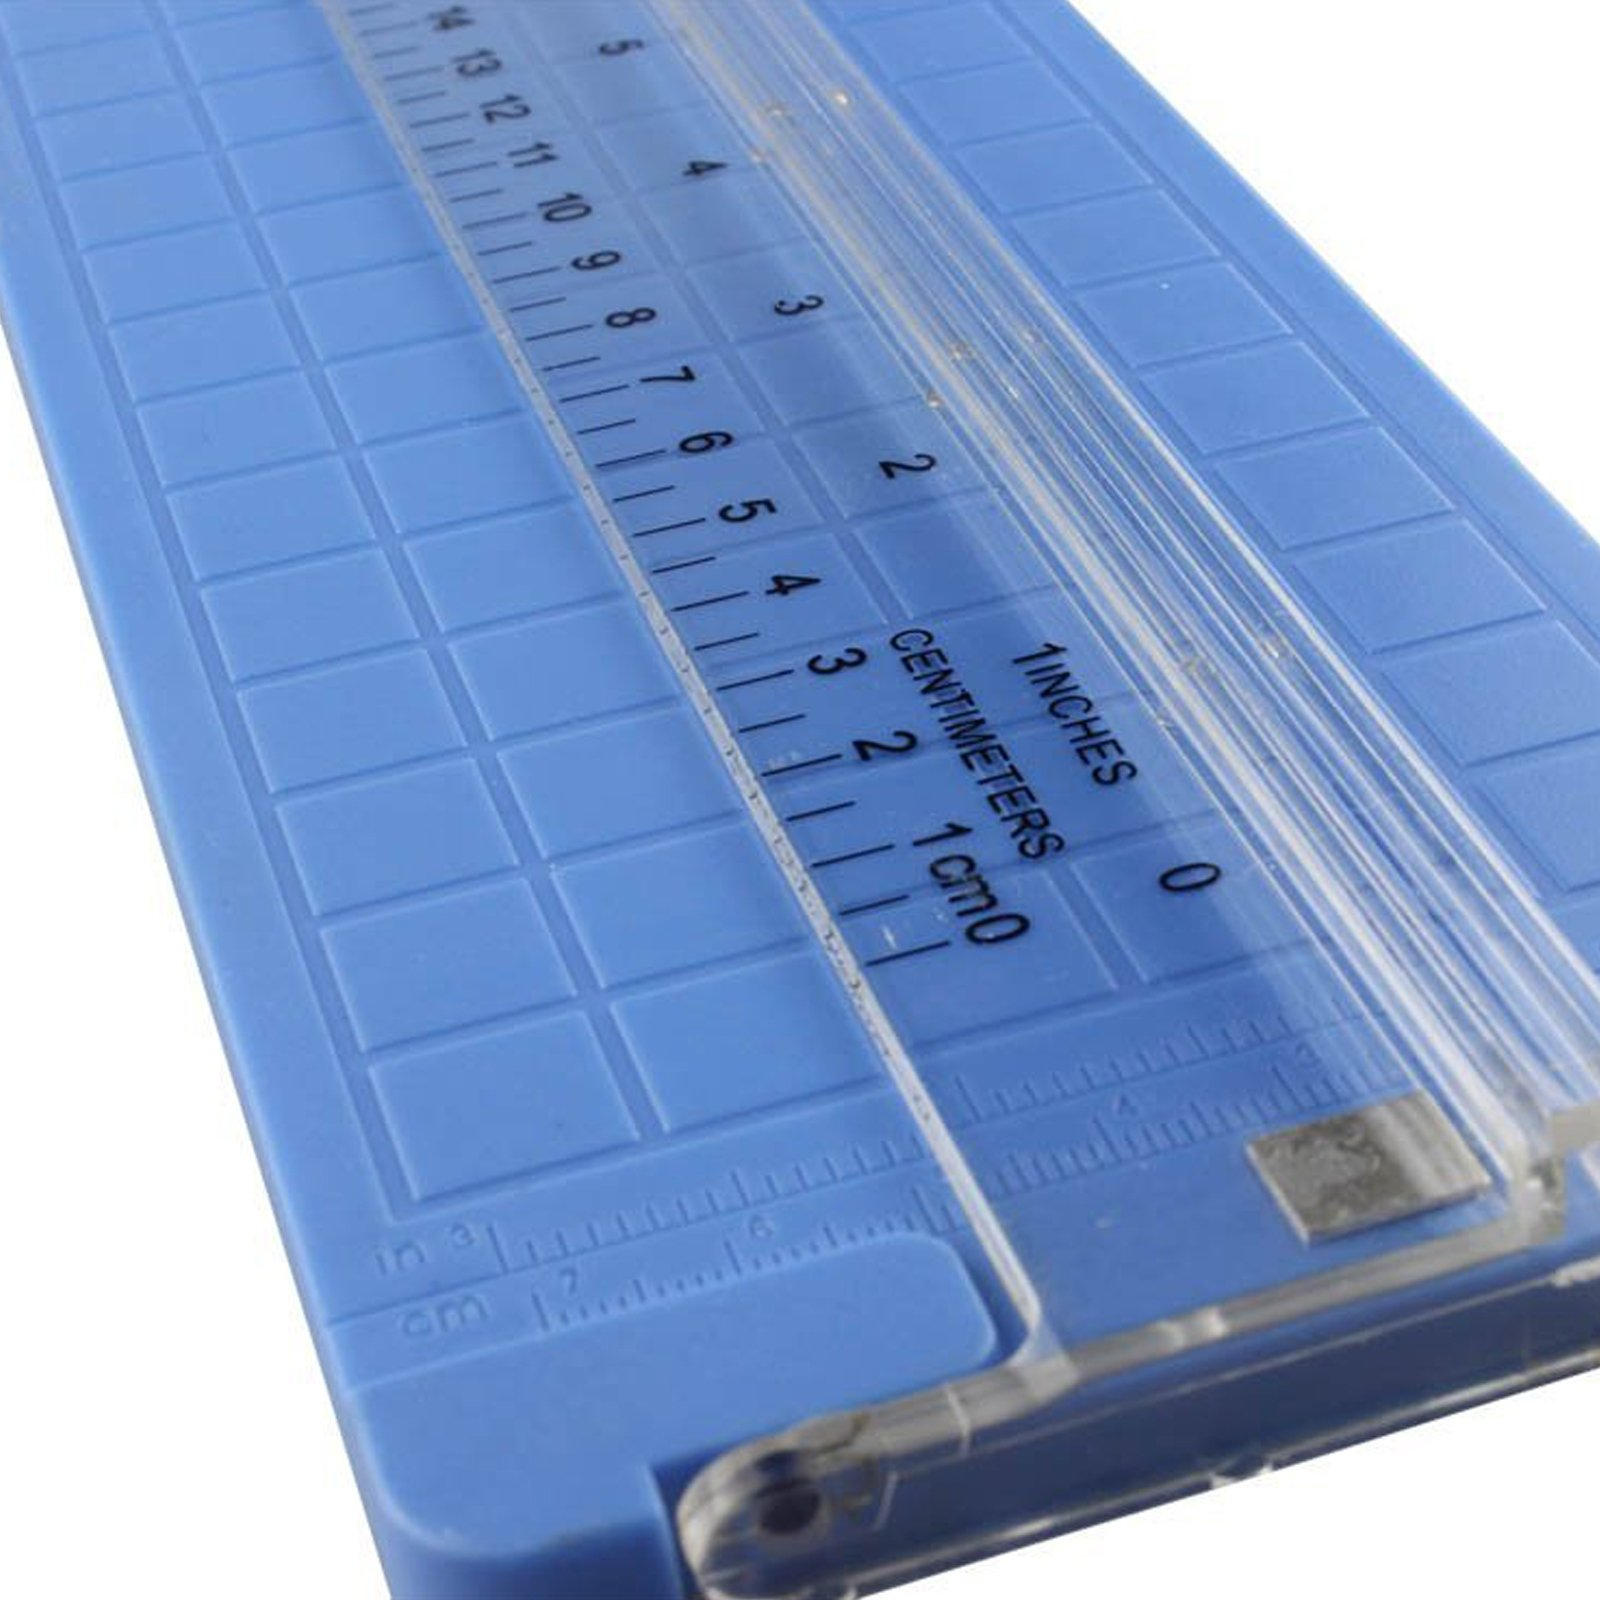 SE Paper Trimmer 12 Inch Cutting Board Magnetic with Grid Guide Base